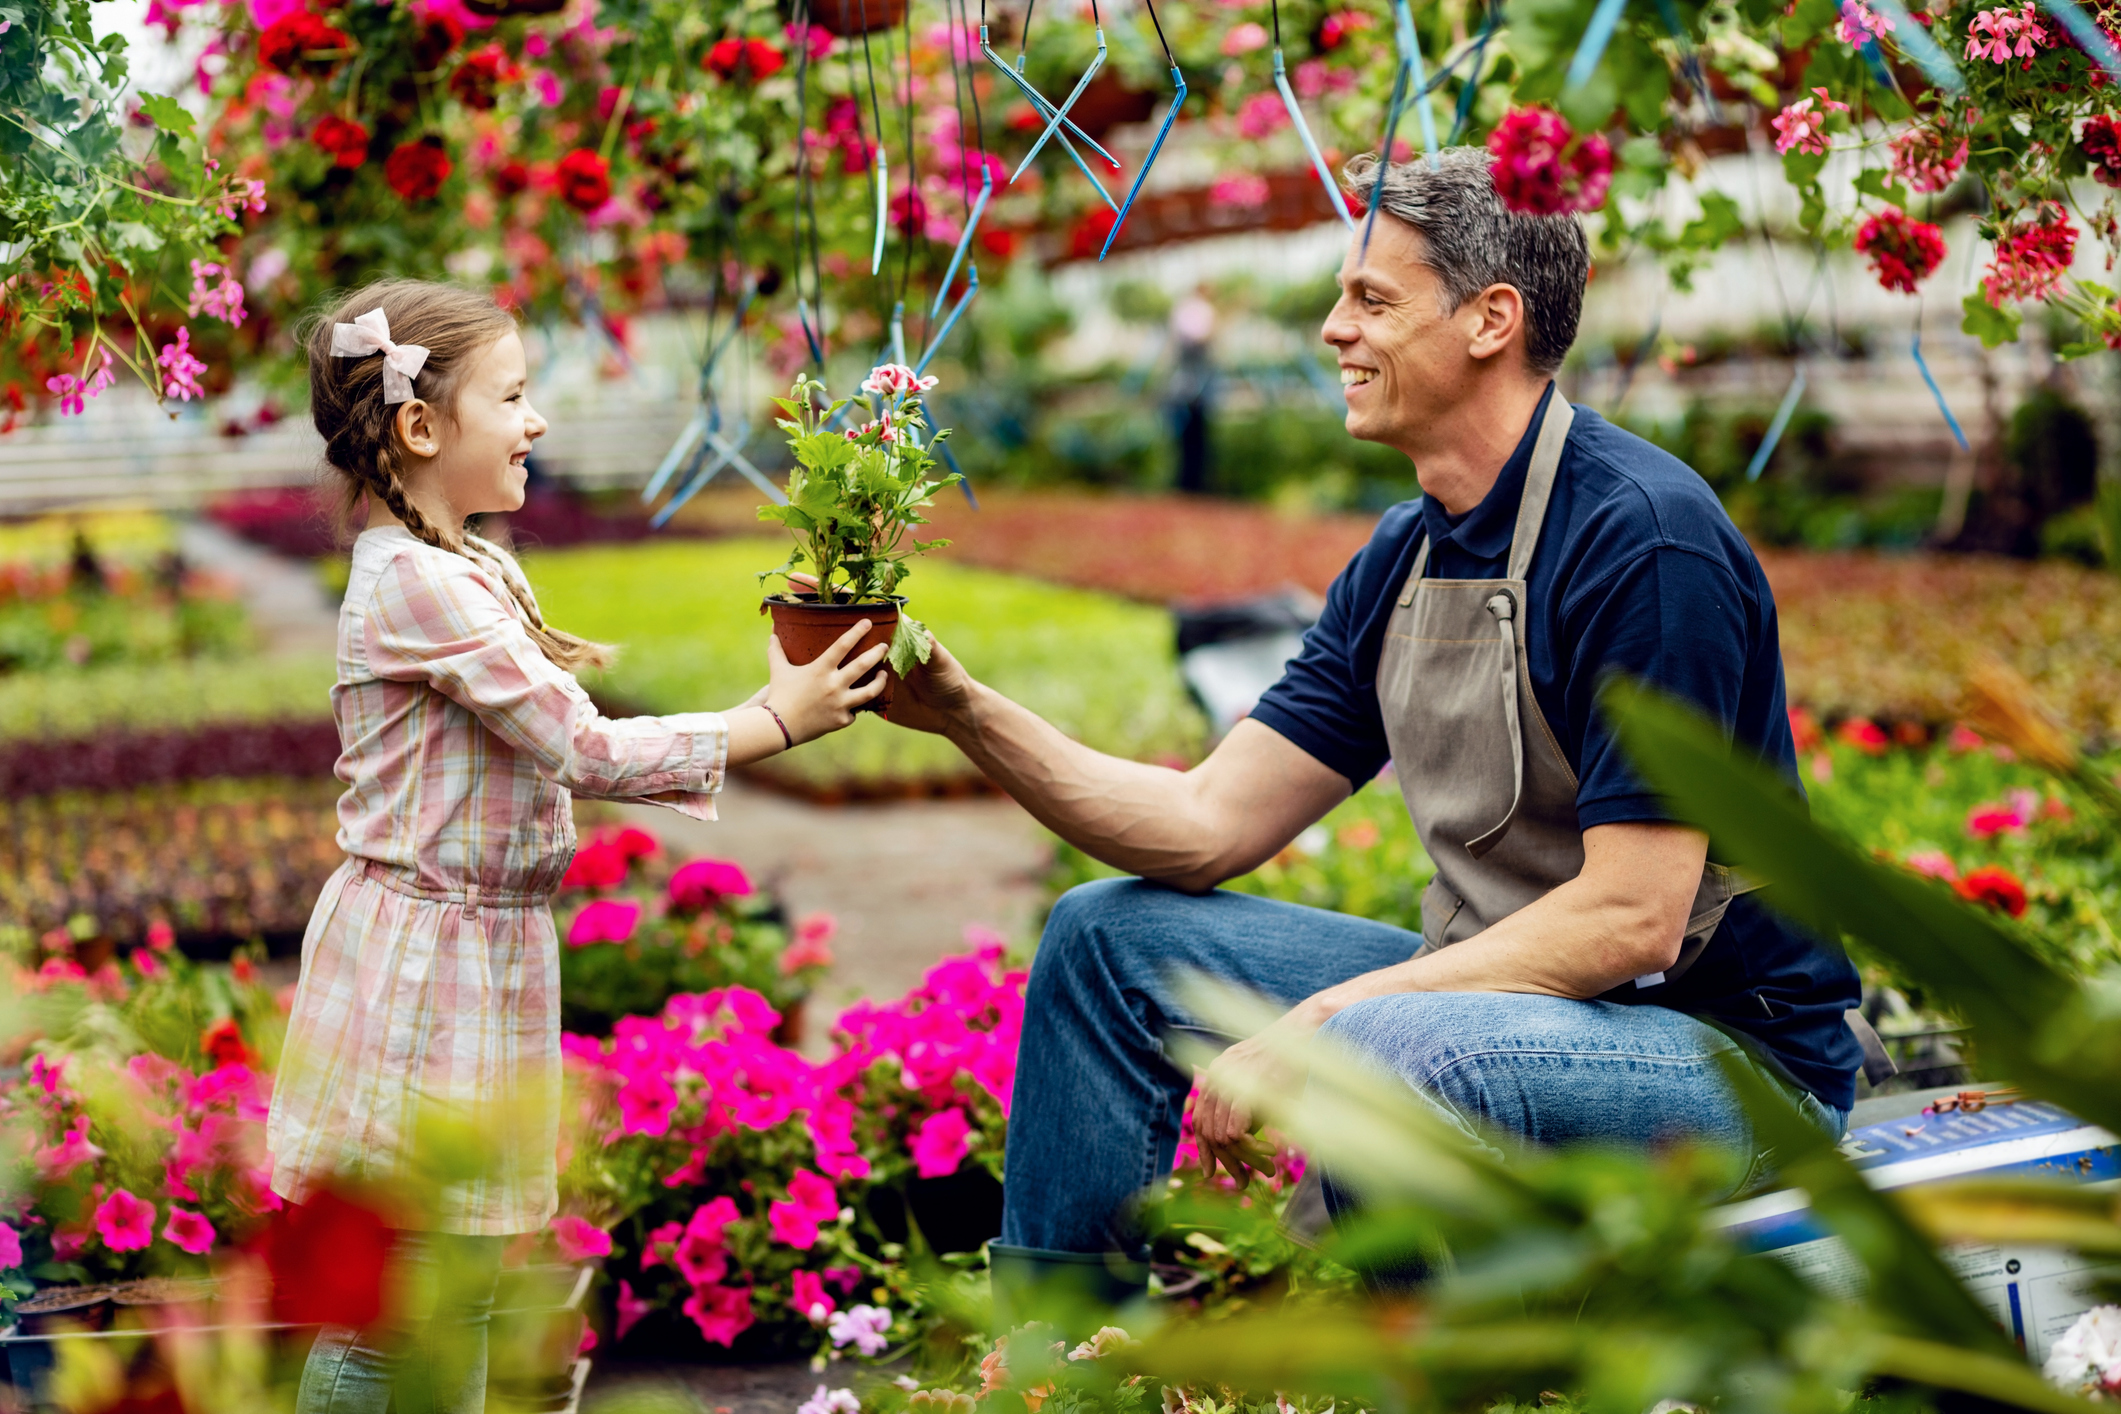 Happy father giving his small daughter potted flower while she's helping him in a garden center.